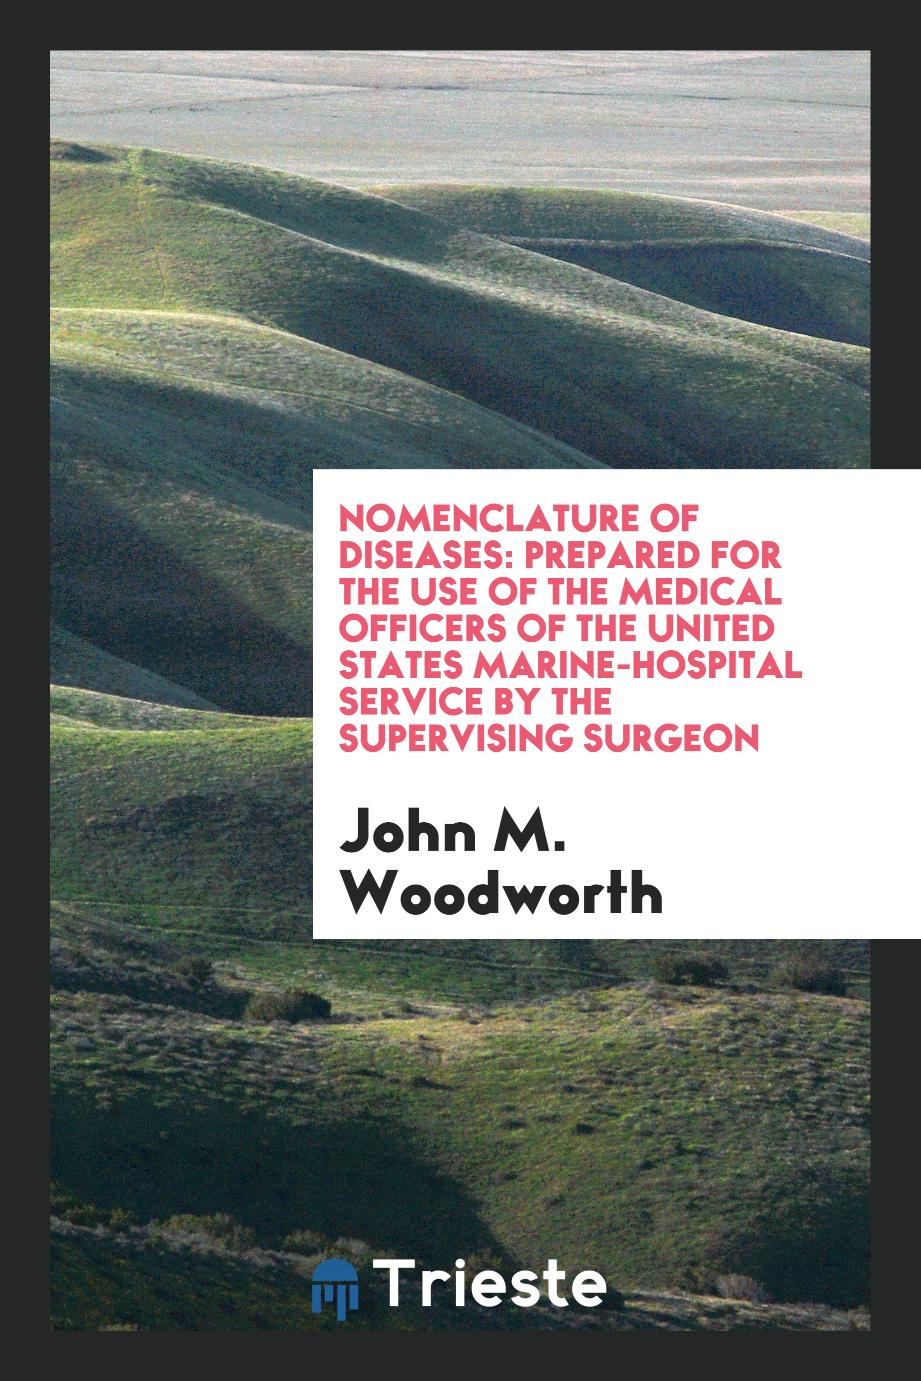 Nomenclature of Diseases: Prepared for the Use of the Medical Officers of the United States Marine-Hospital Service by the Supervising Surgeon